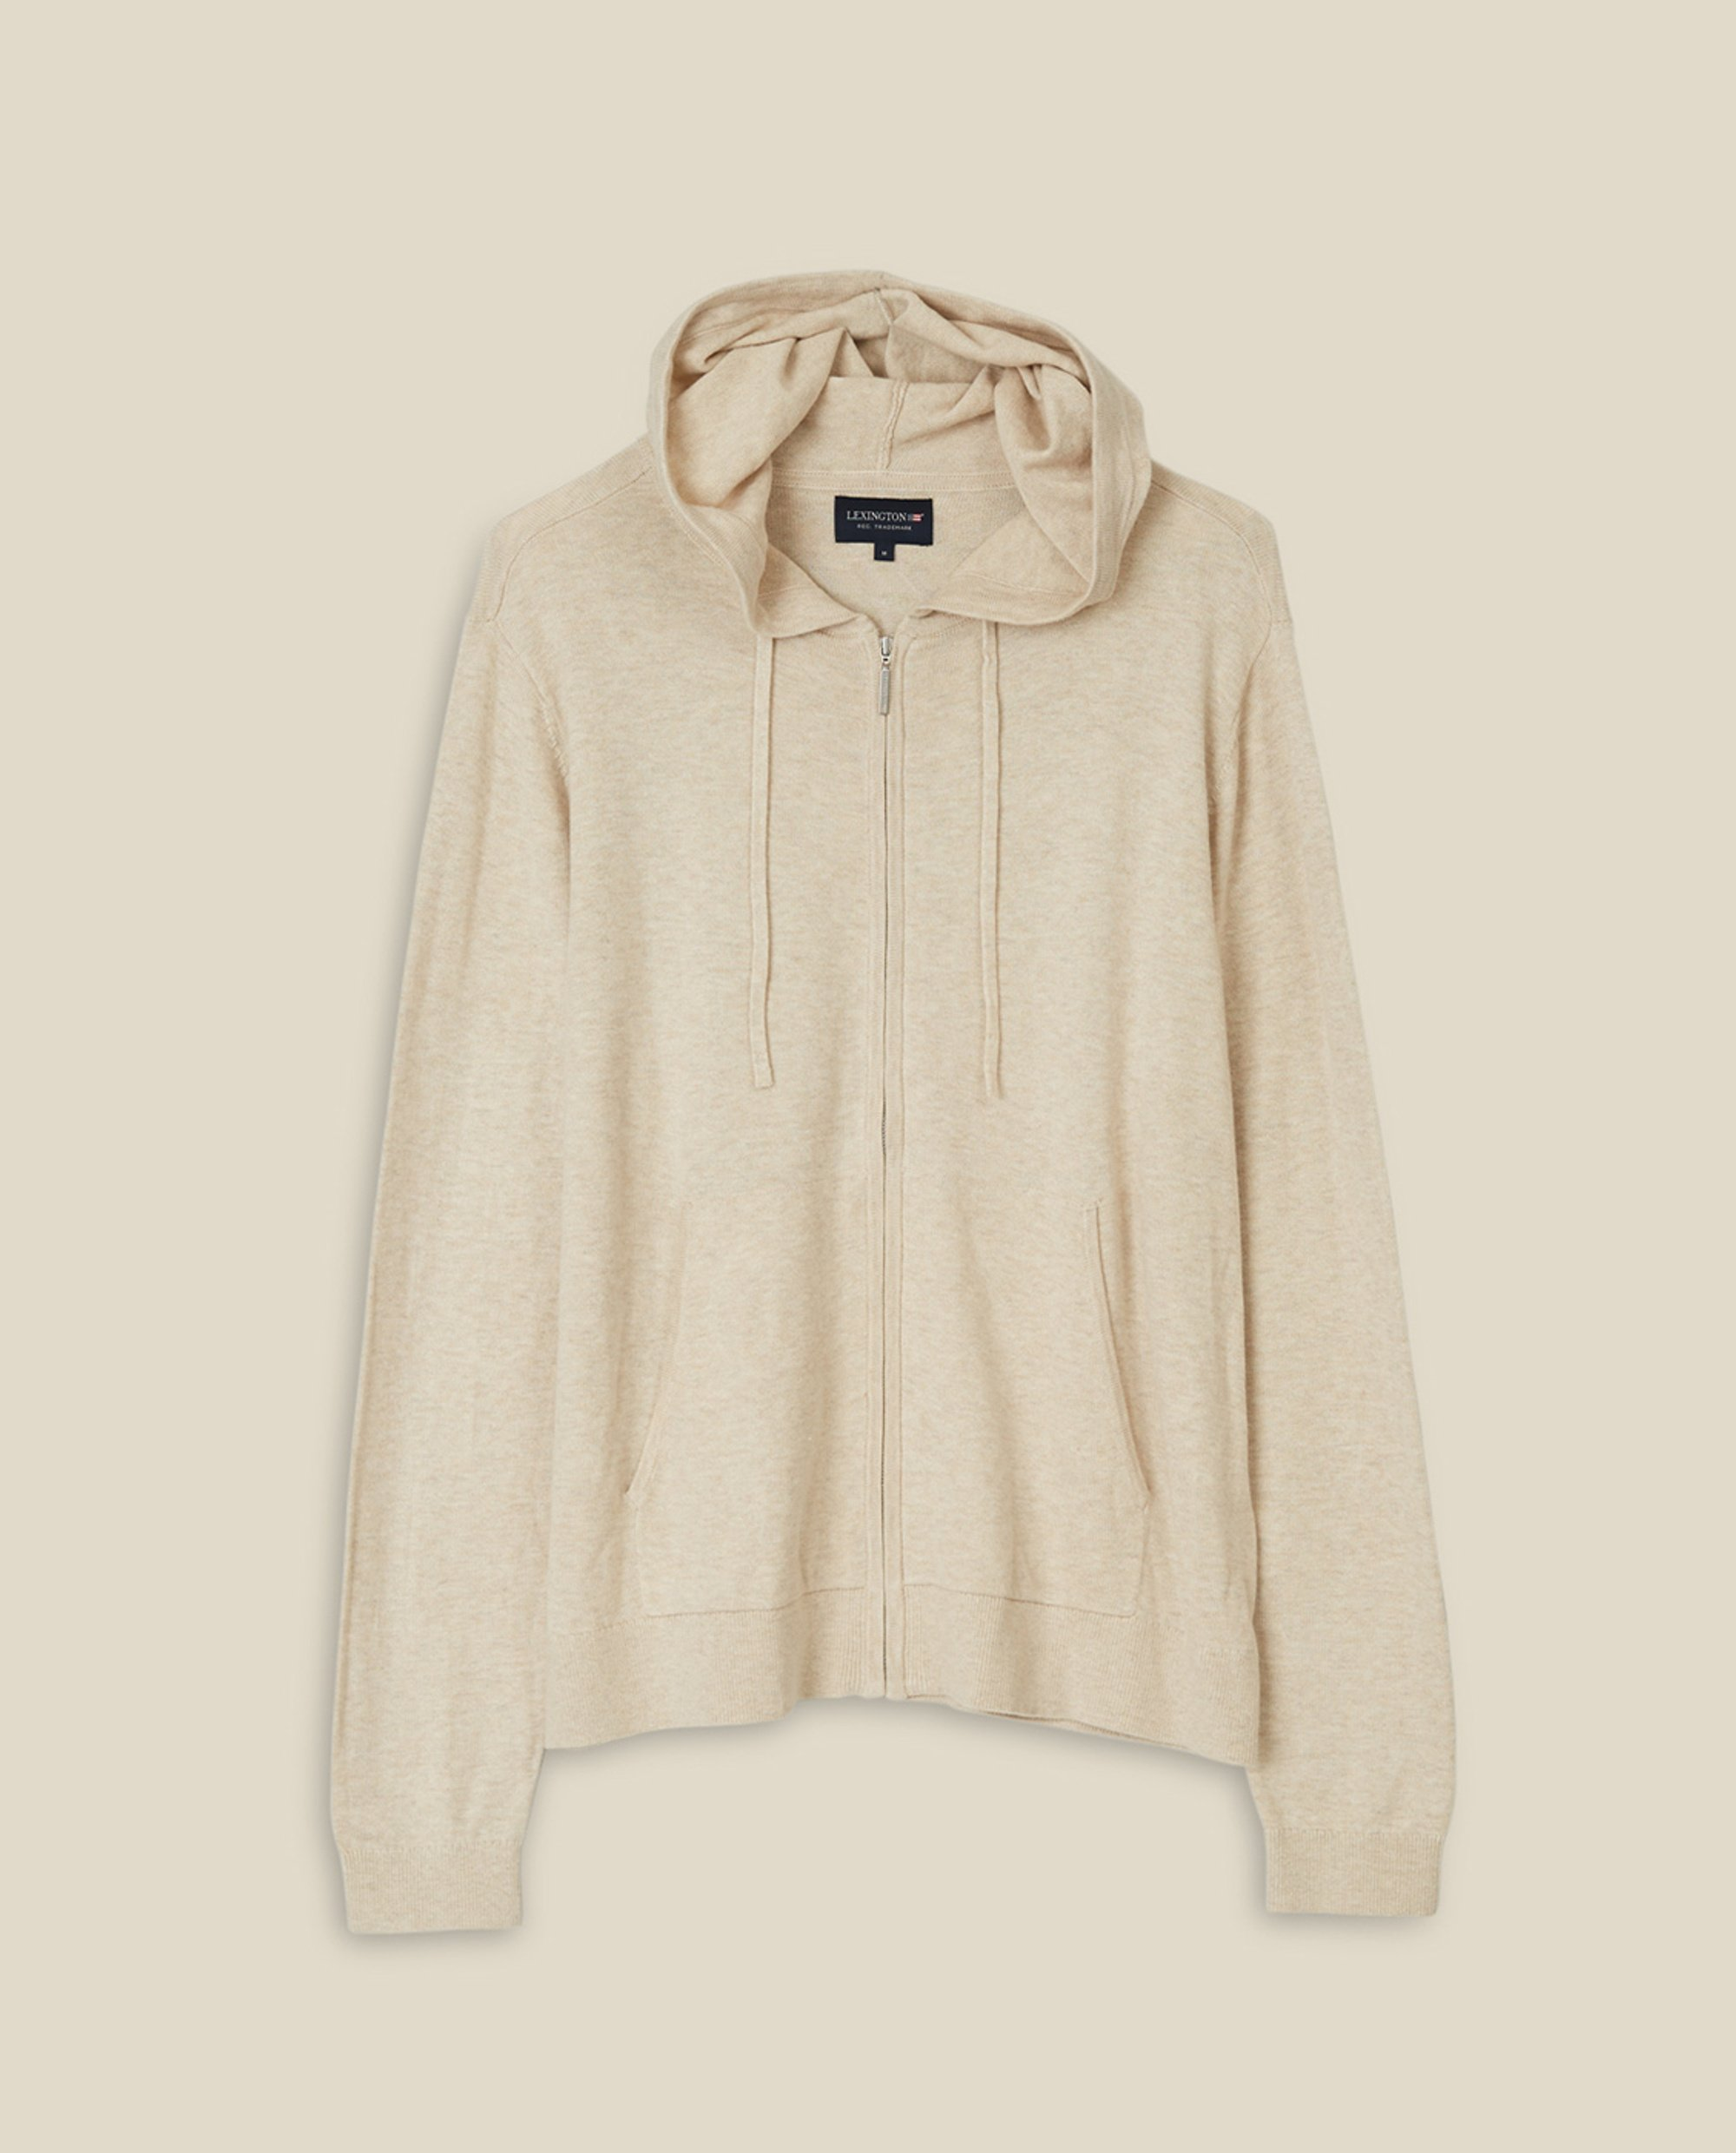 June Cotton/Bamboo Knitted Hoodie, Offwhite